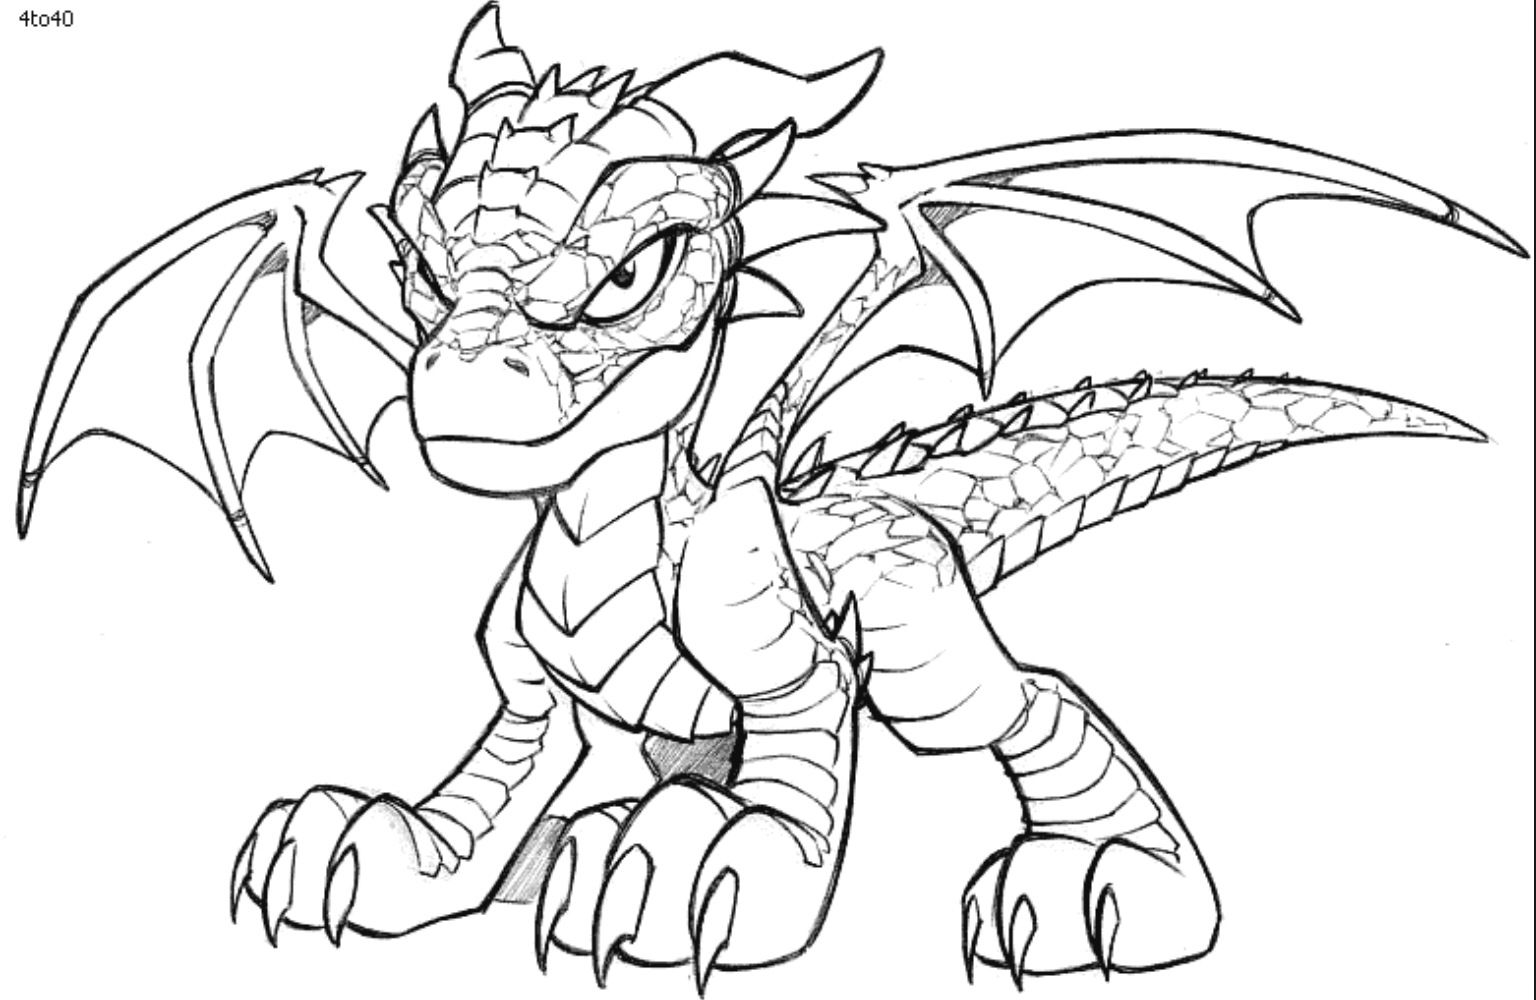 pictures of dragons for kids pin by katrina bissett on dragons dragon coloring page dragons for kids pictures of